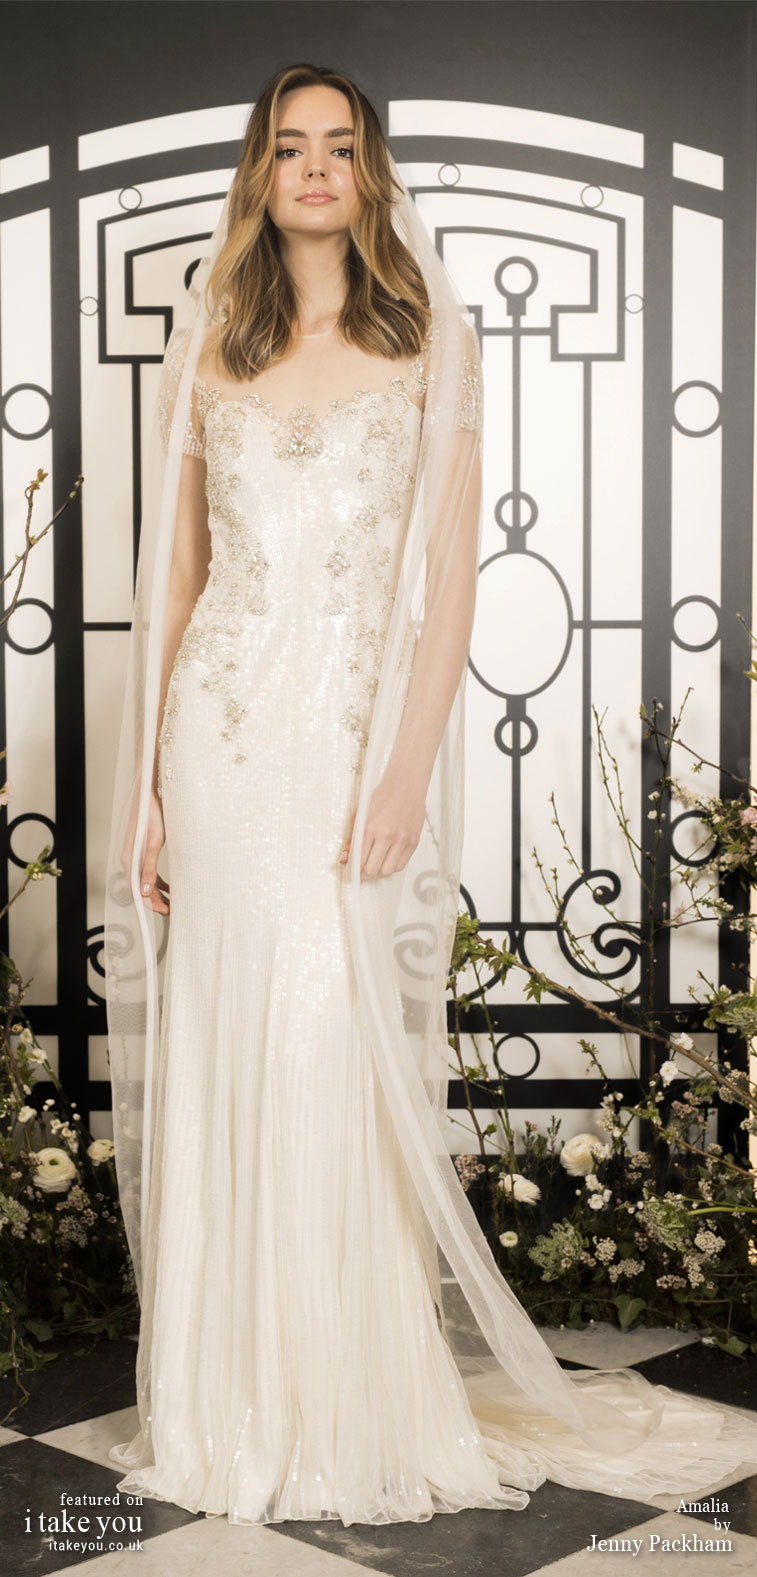 Spring 2020 Bridal Collection by Jenny Packham - Pure elegance short sleeve embellishment Wedding Dress #weddingdress #weddingdresses #wedding #bridalgown #bridedress